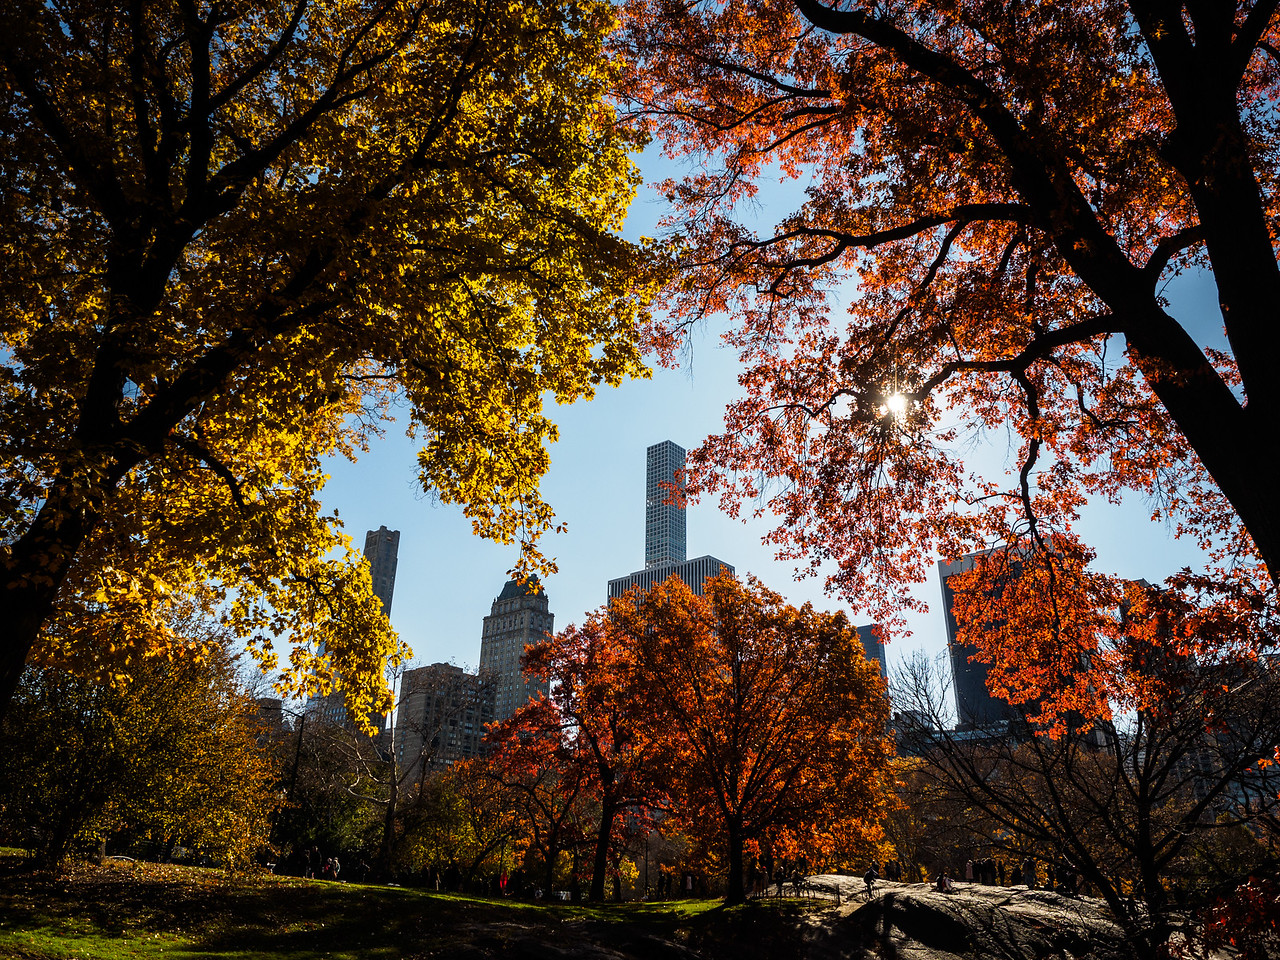 Central Park on Thanksgiving Day